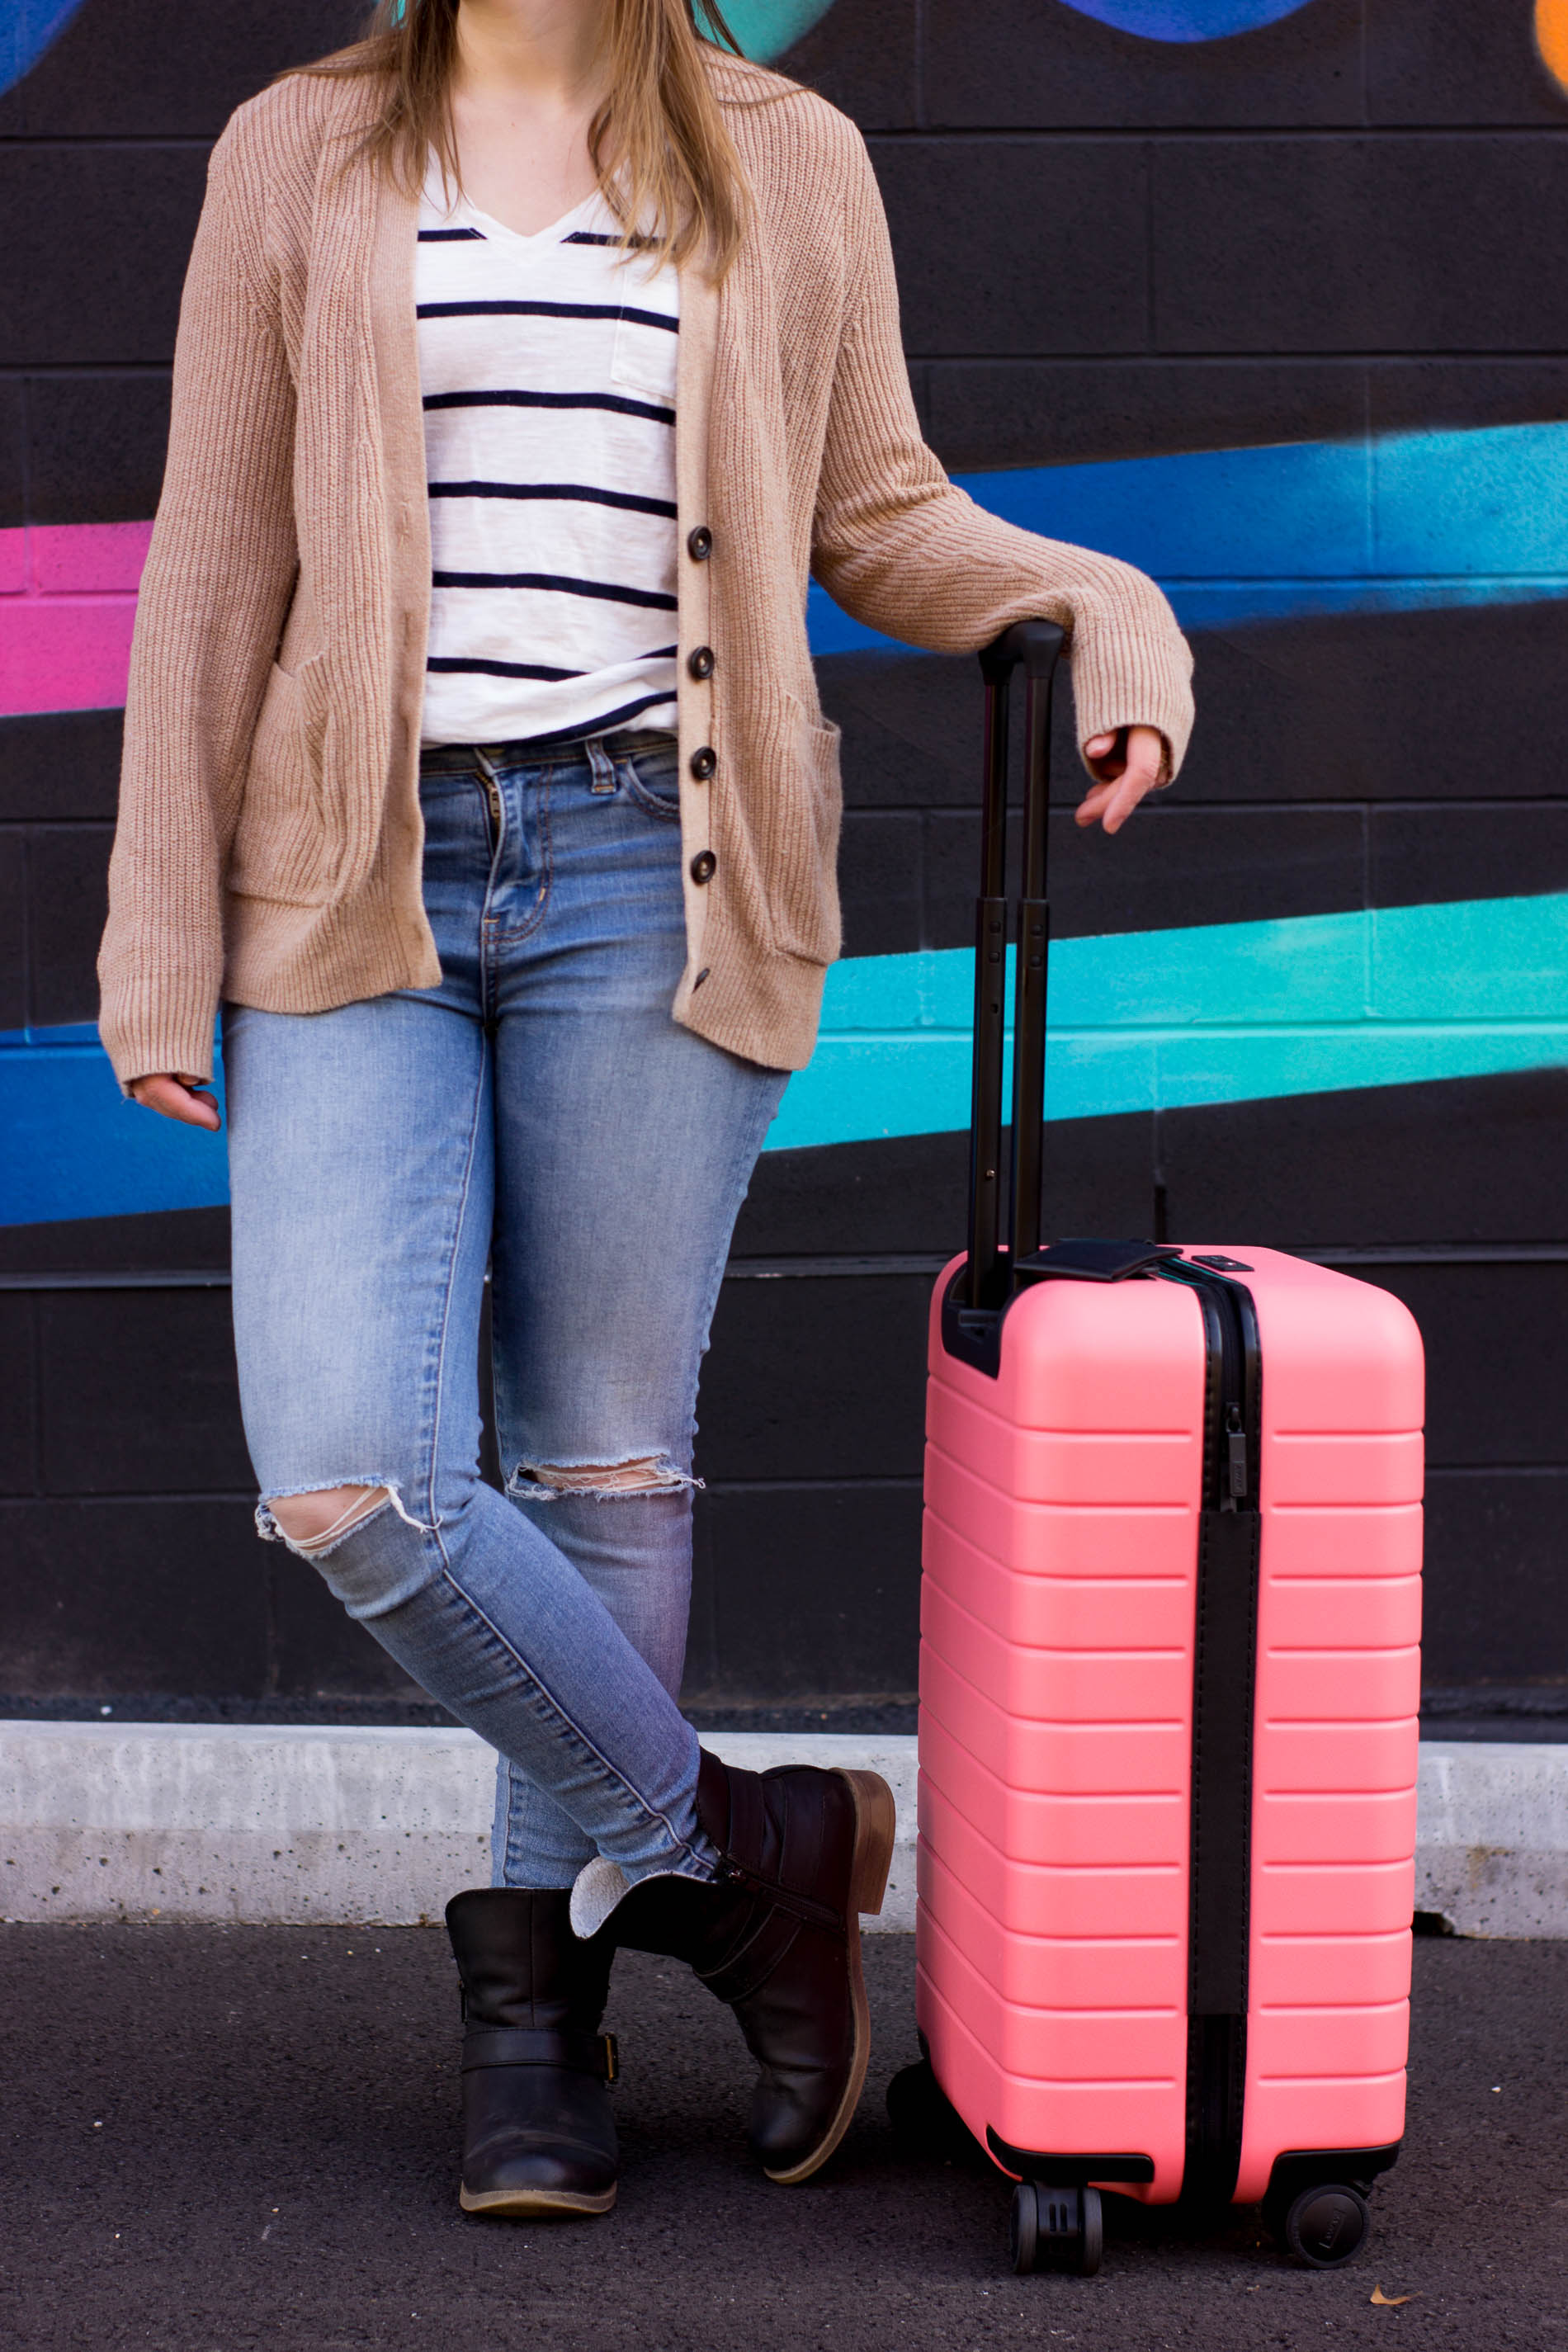 The Perfect Travel Outfit | Something Good, @danaerinw , coral away suitcase, moto boots, bigger carry on, away suitcases